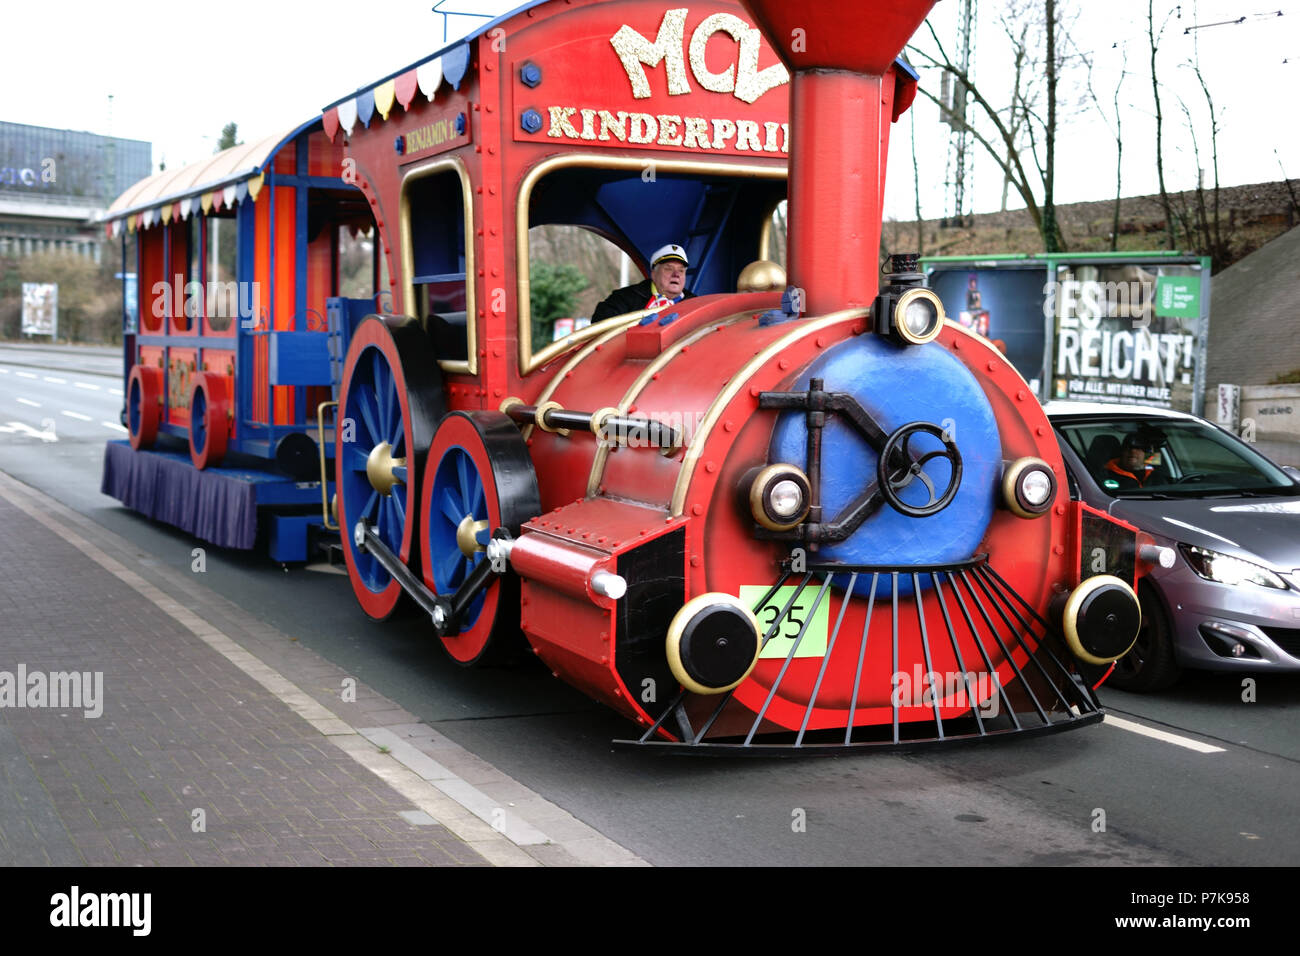 A locomotive-type vehicle with trailers for city tours driving children at carnival time in Mainz, - Stock Image